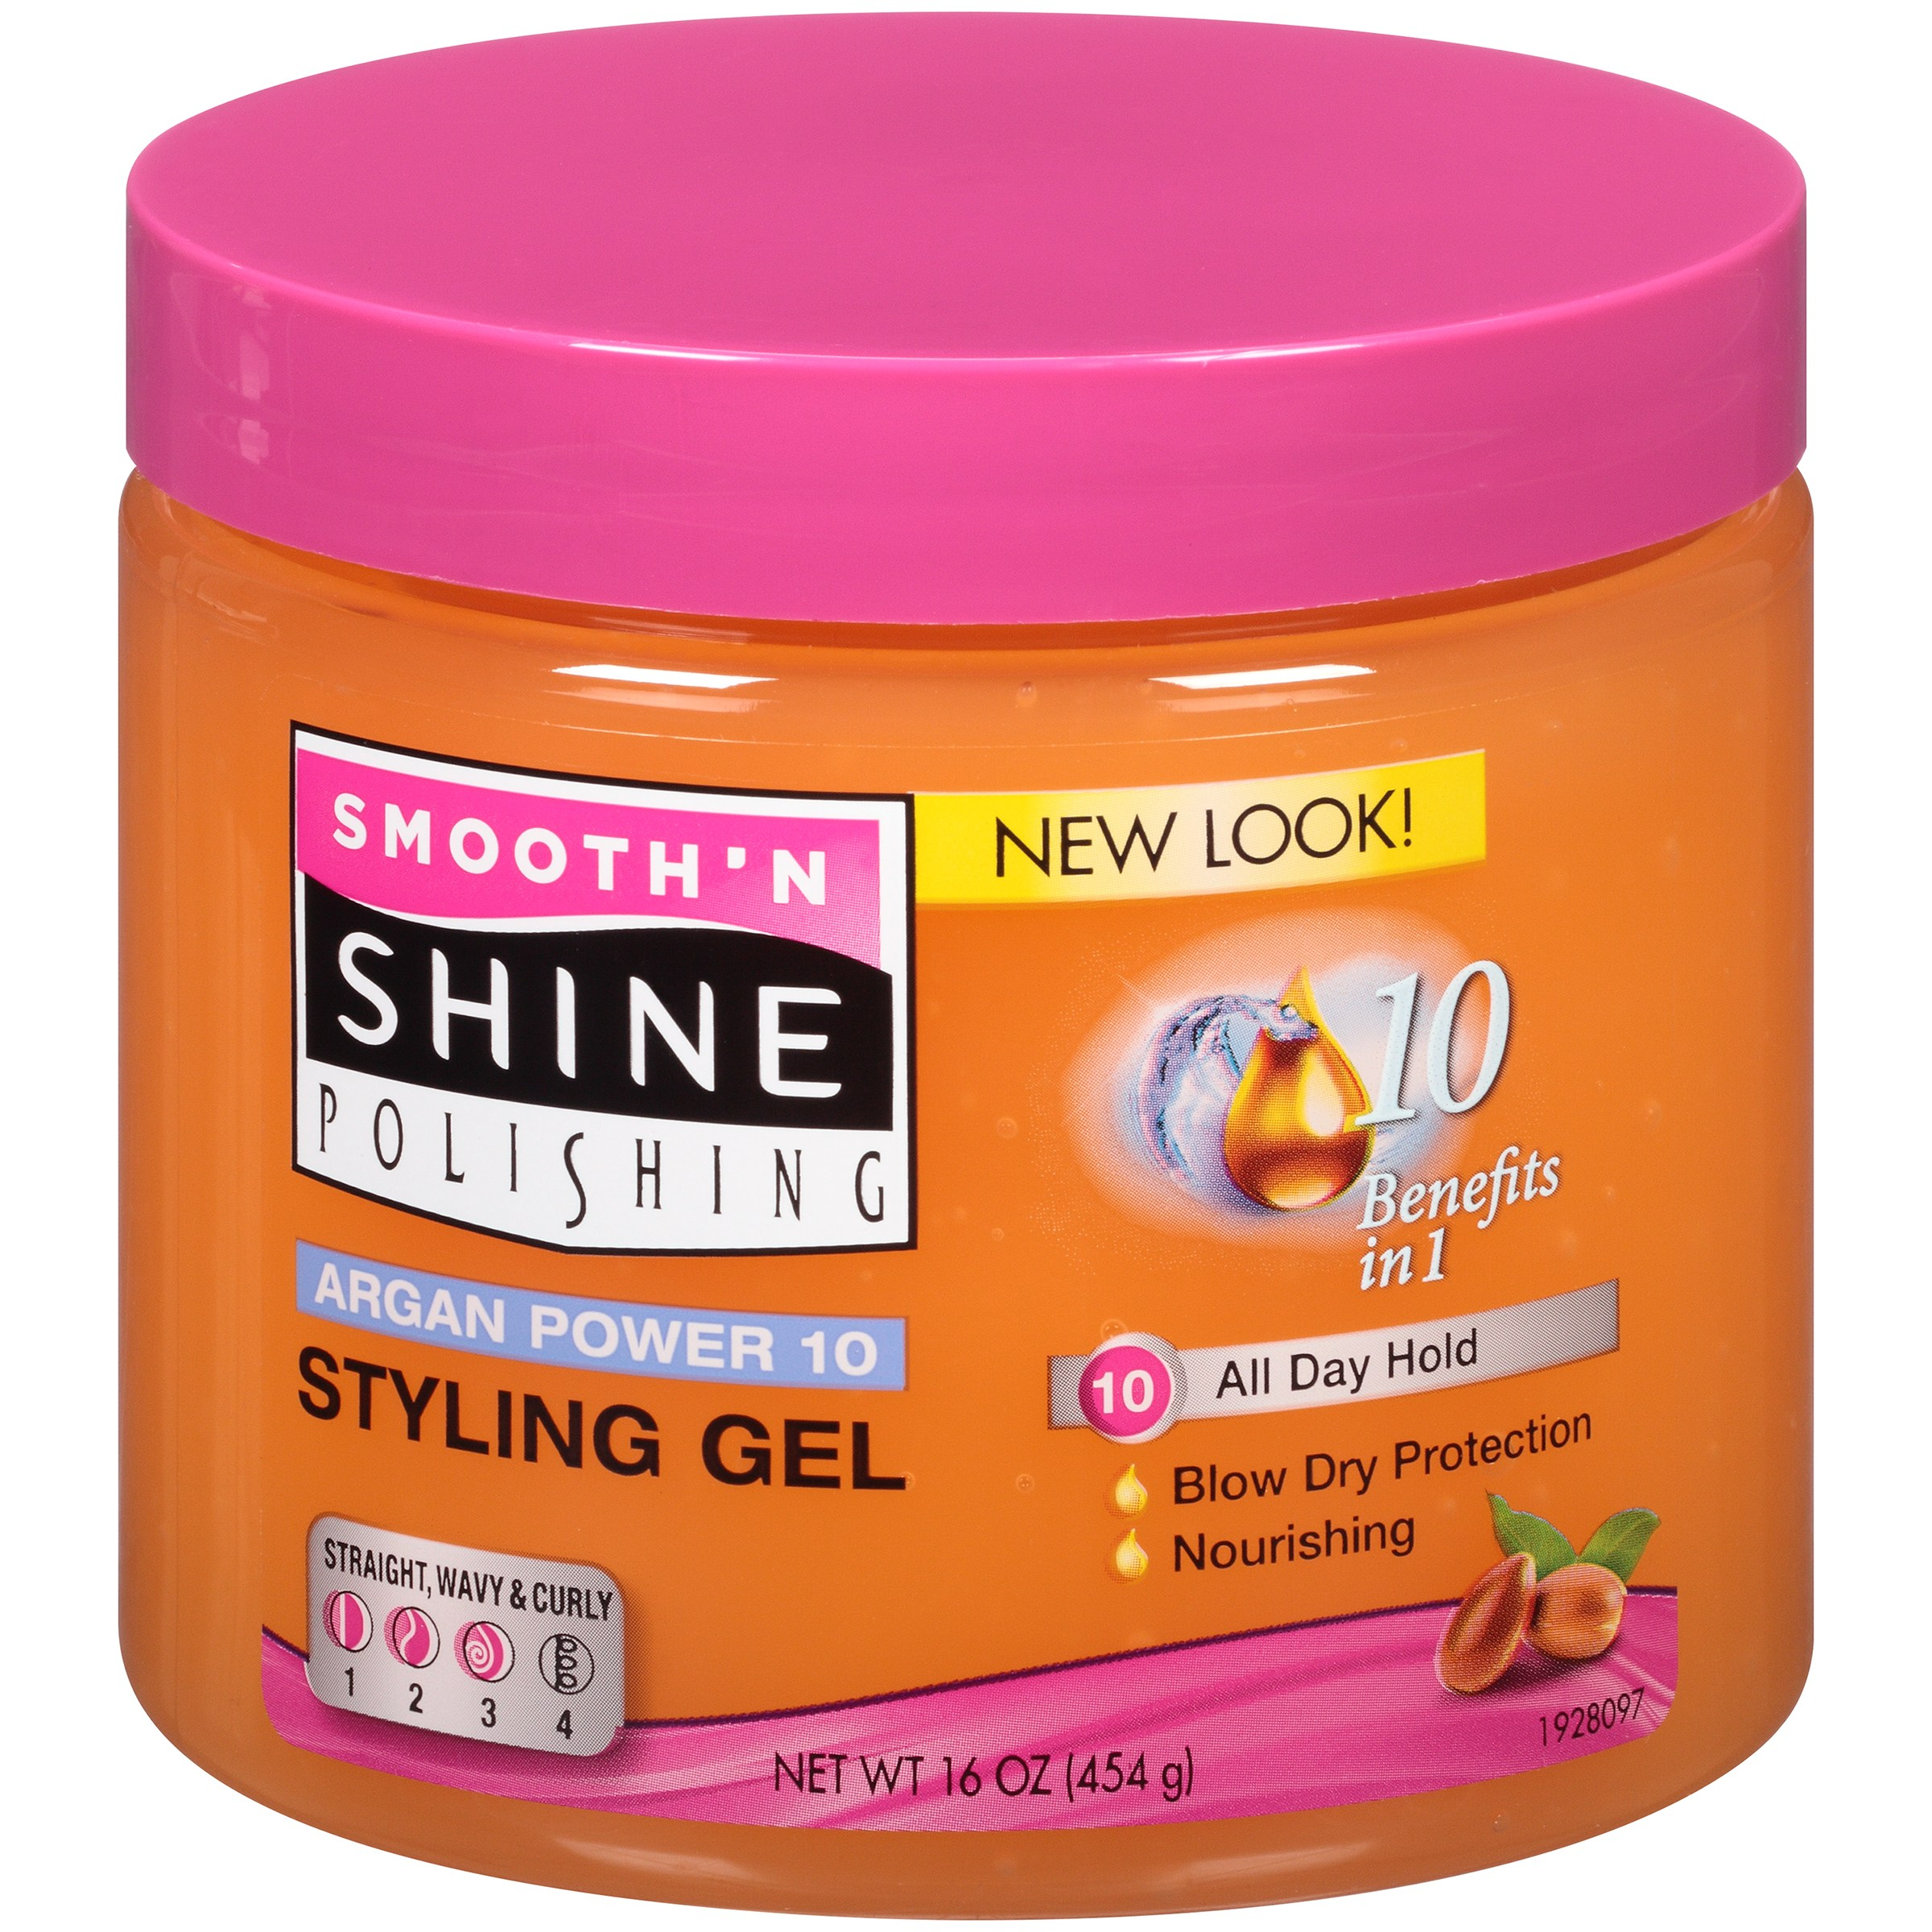 Smooth 'N Shine Polishing Argan Power 10 Styling Gel 16 oz. Plastic Jar